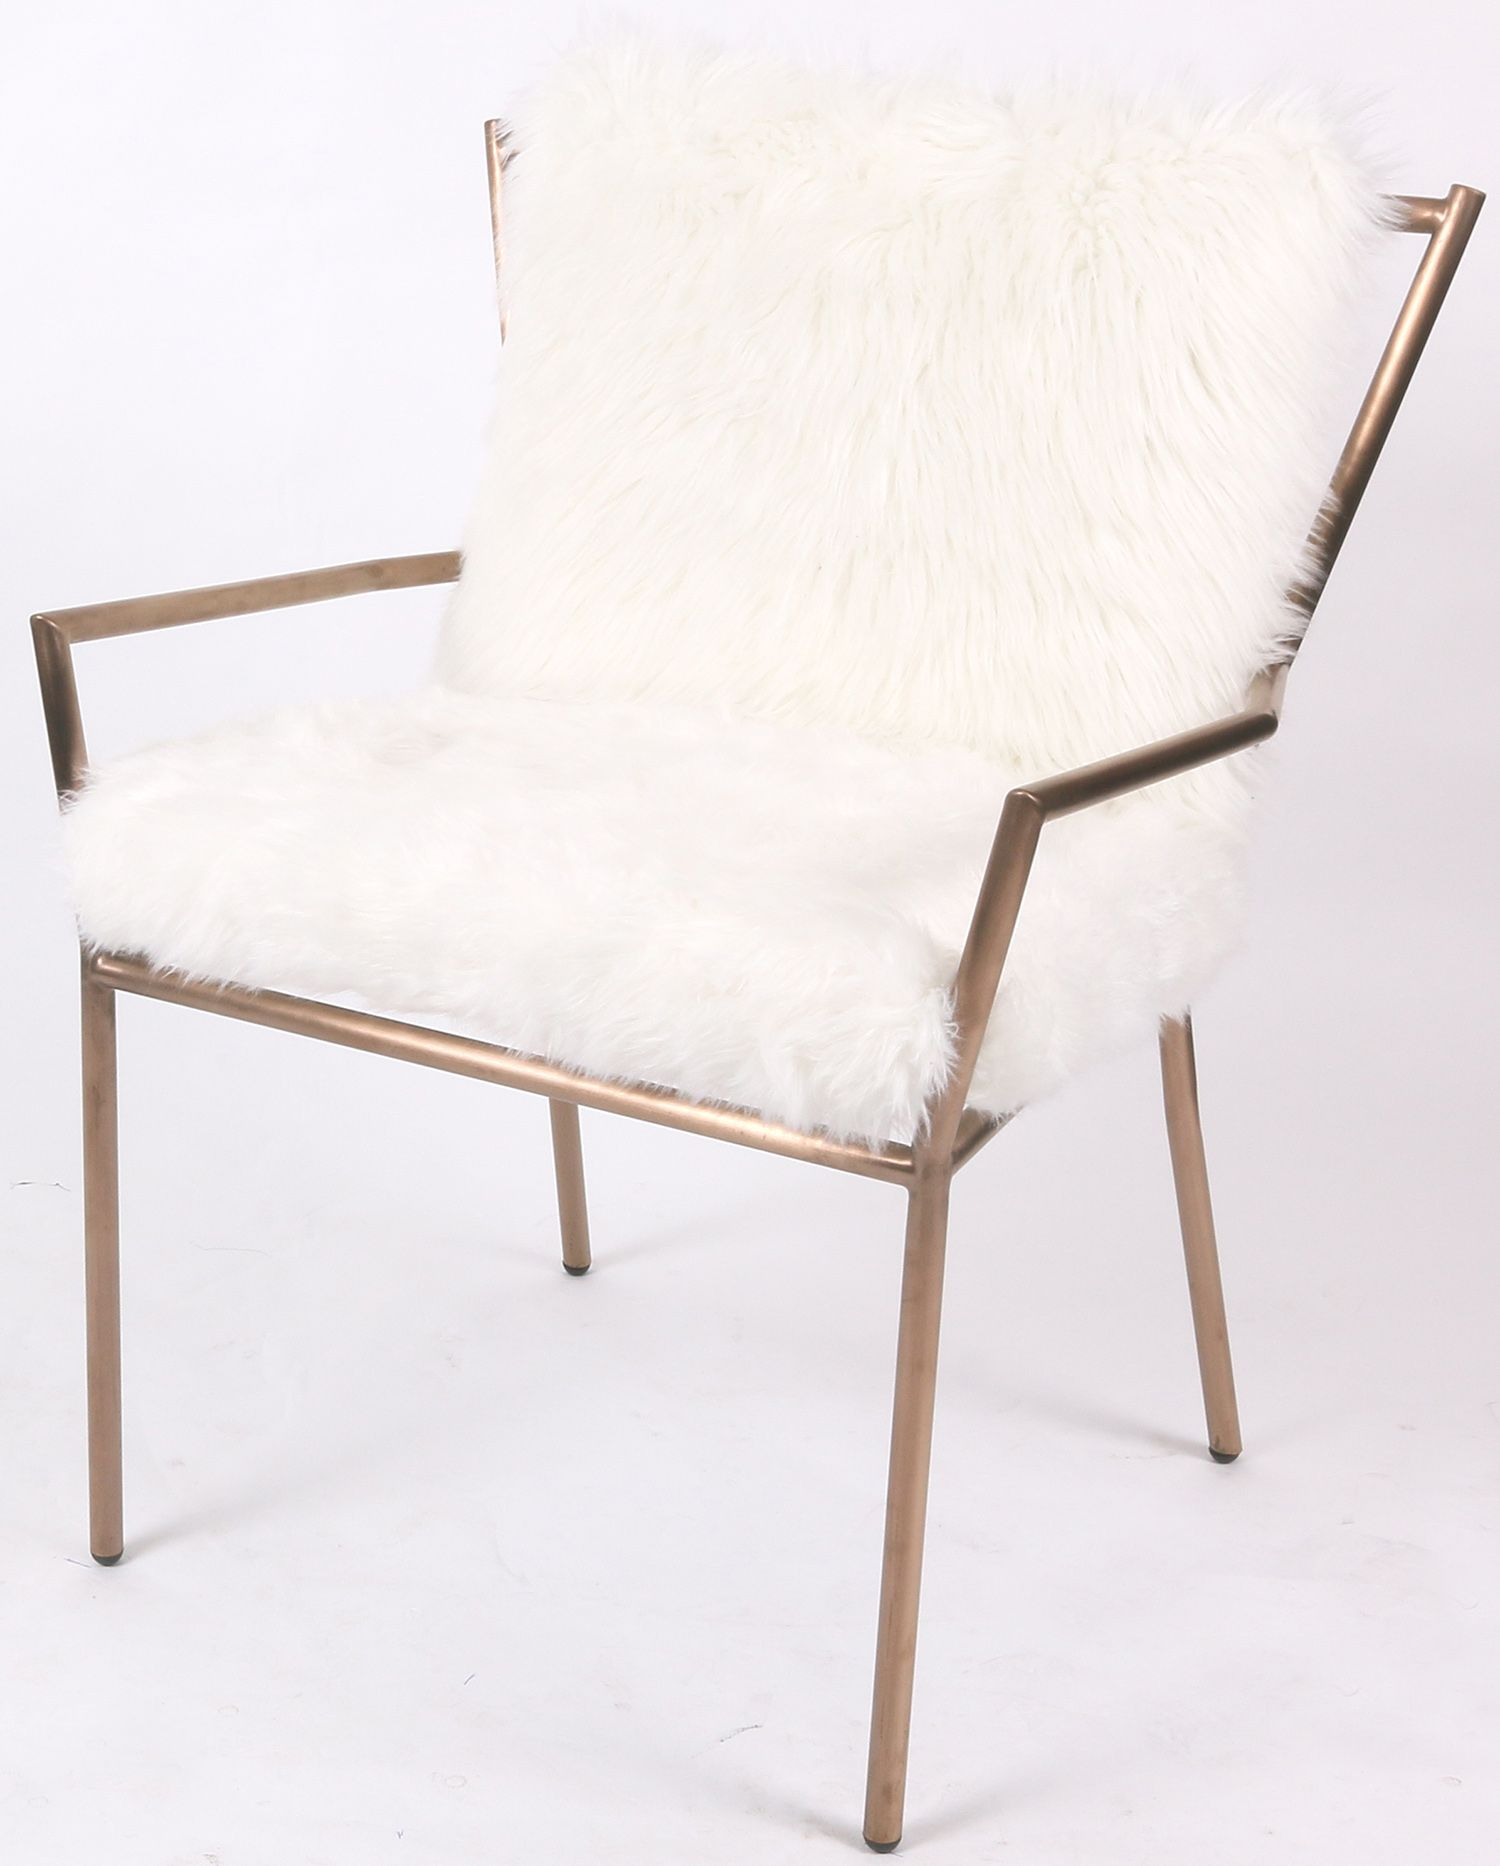 Duffy Faux Fur Chair Rose Gold Frame in Freesia White Material